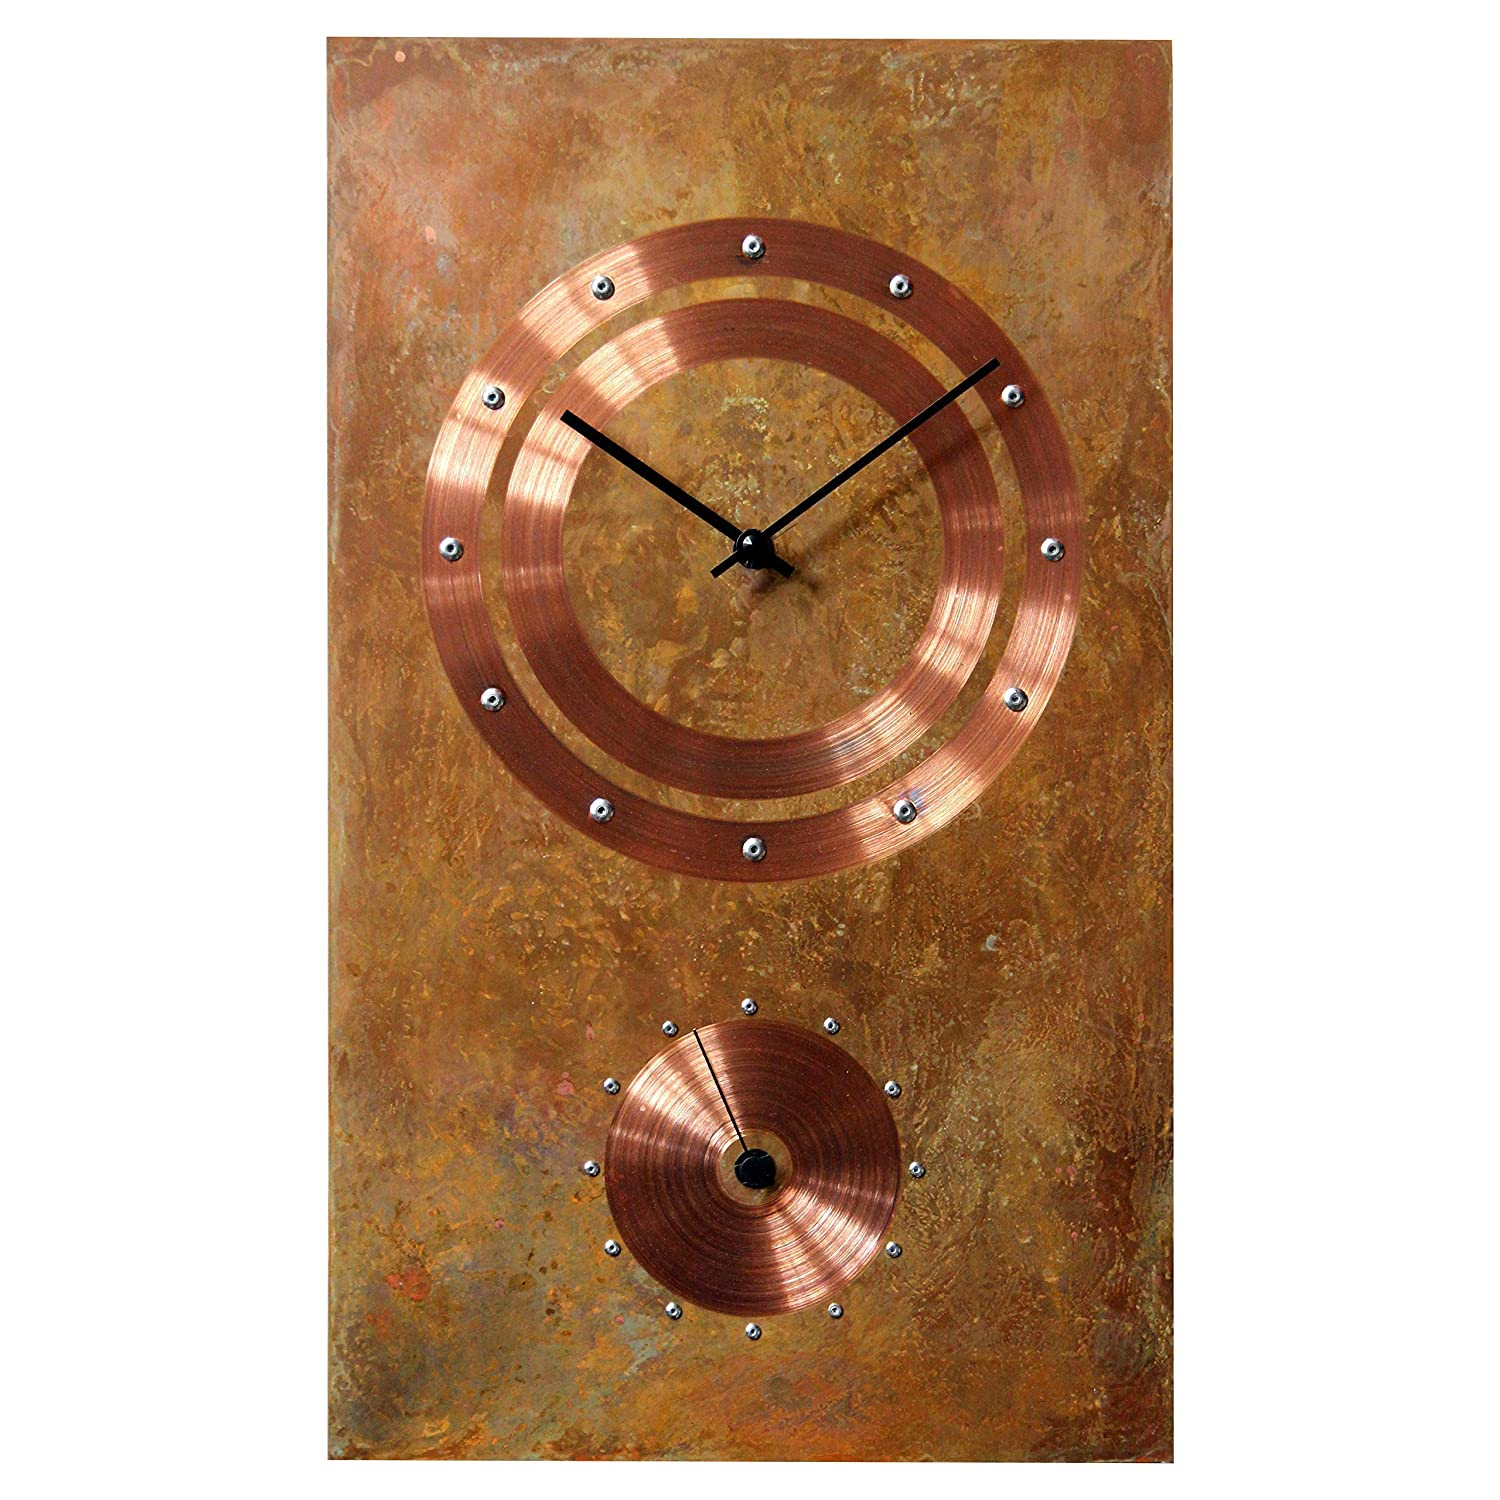 Large Rectangle Copper Rustic Wall Clock 20-inch - Silent Non Ticking Gift for Home/Office/Kitchen/Bedroom/Living Room